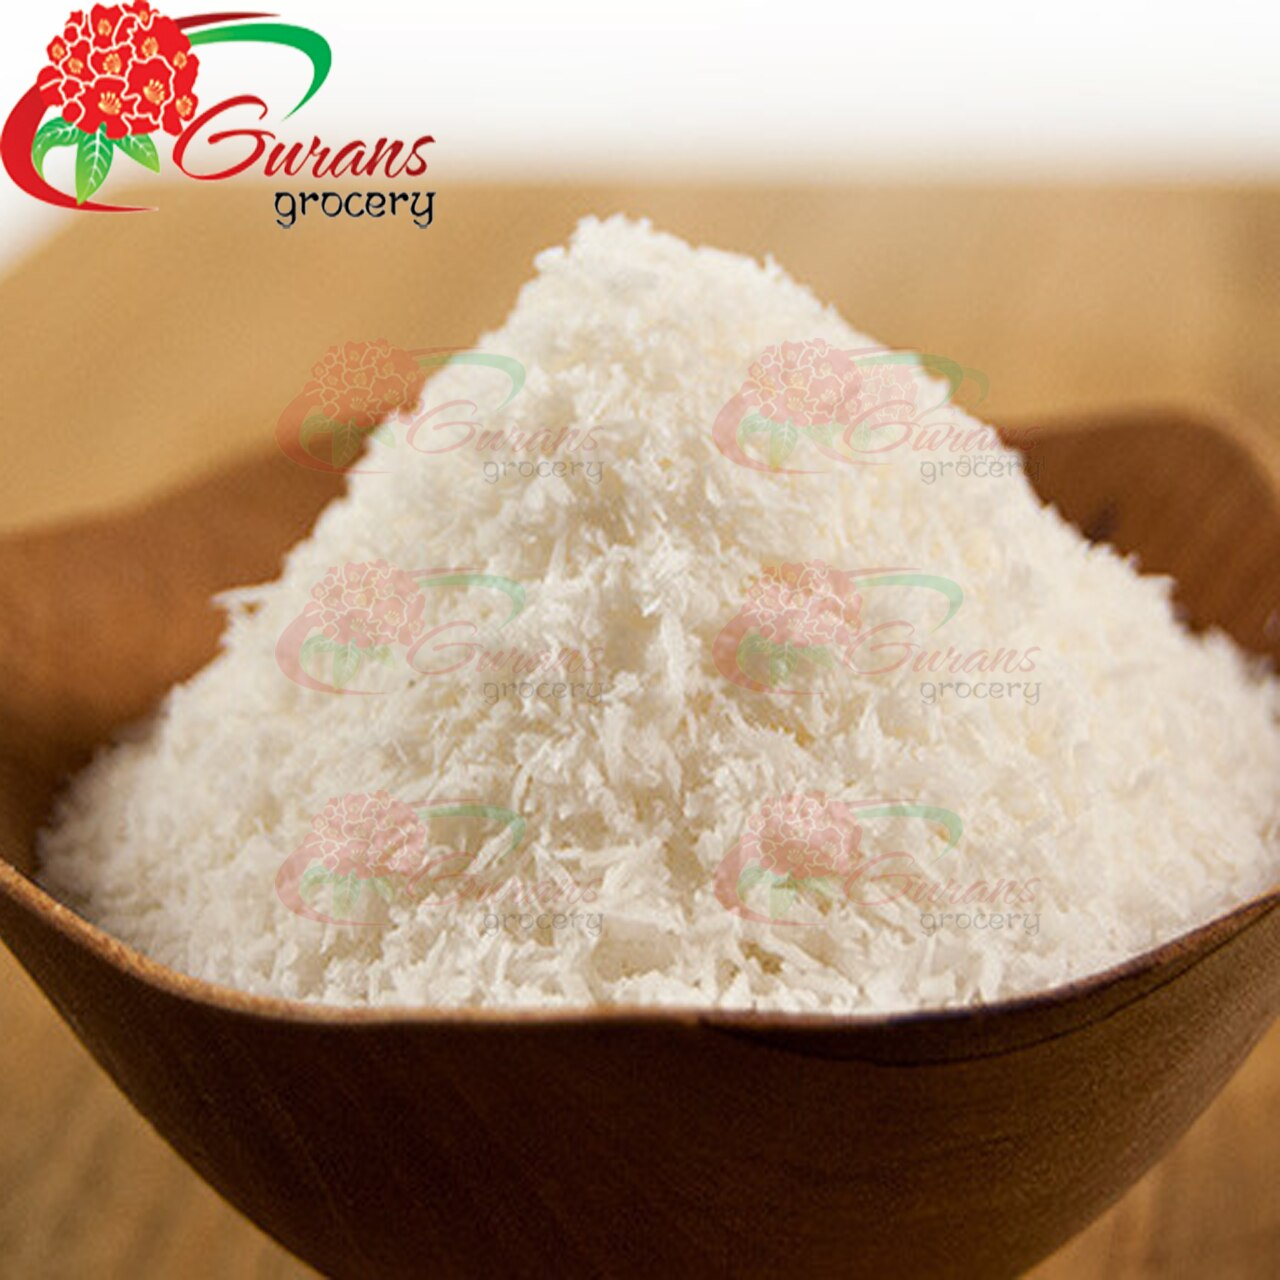 Shredded Coconut 200 gm